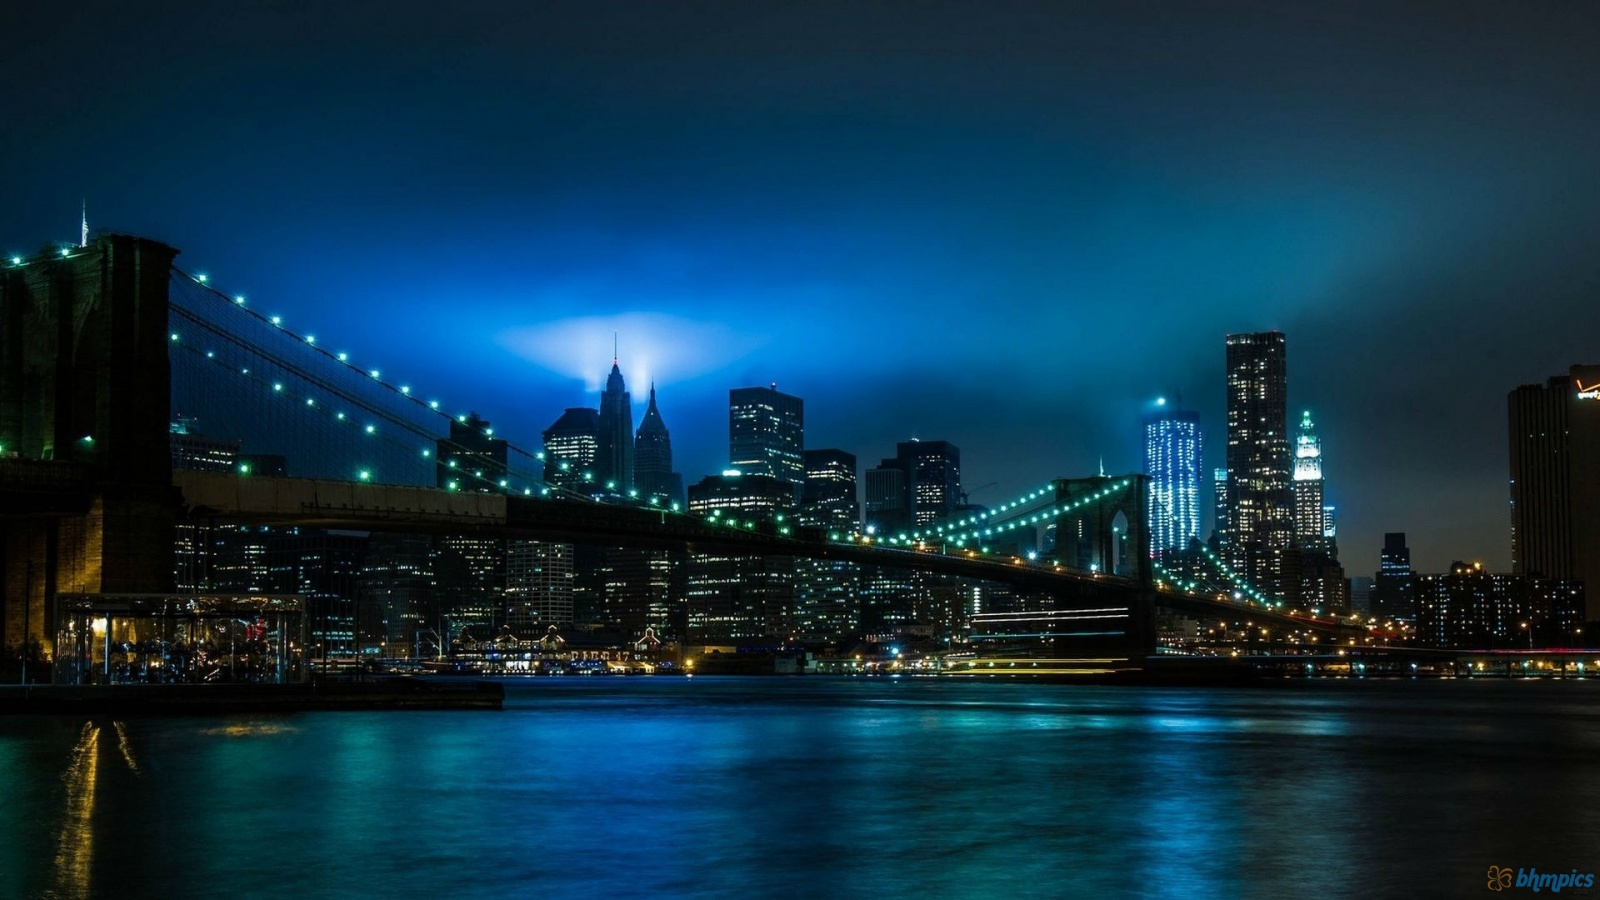 New York Blue Night And Bridge Lights 1600x900 2572 HD Wallpaper Res 1600x900